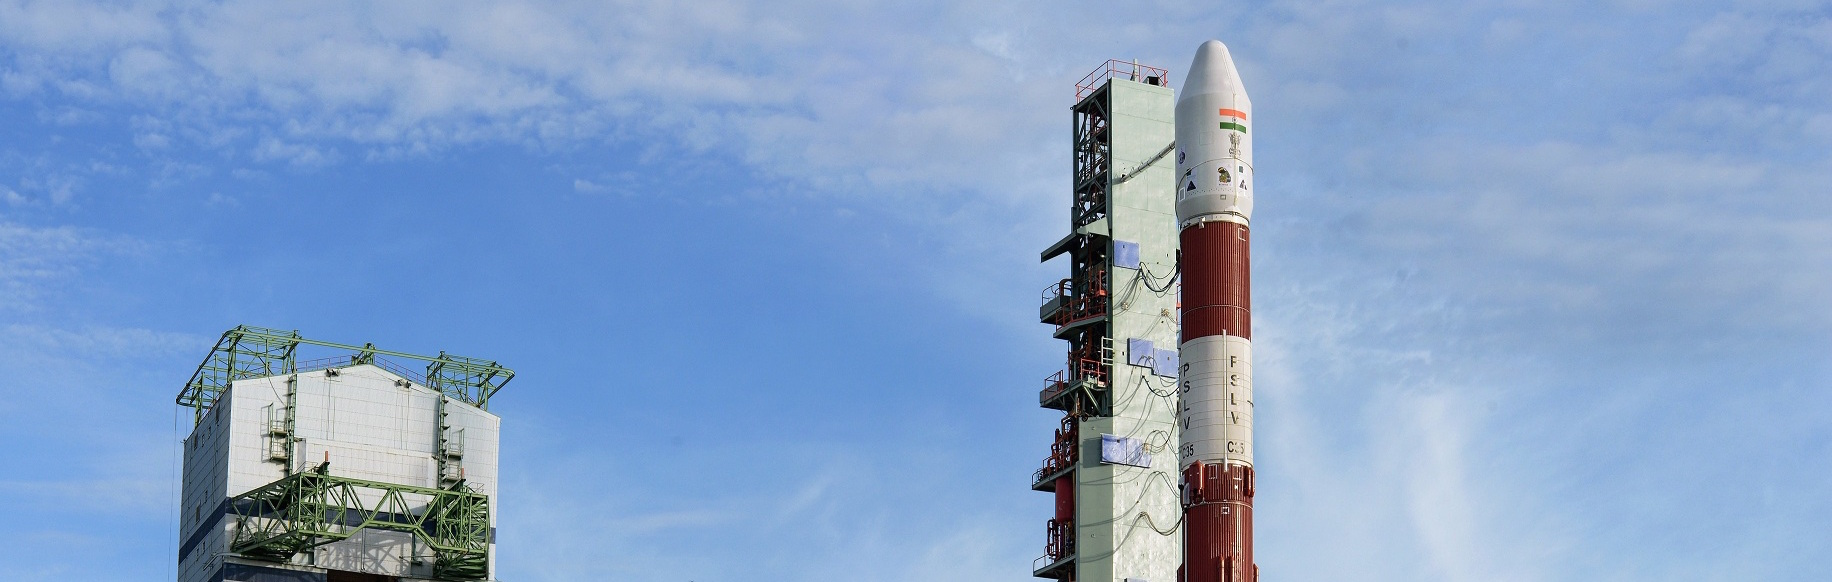 The Future of India's Commercial Spaceflight Is Closely Tied to the PSLV's